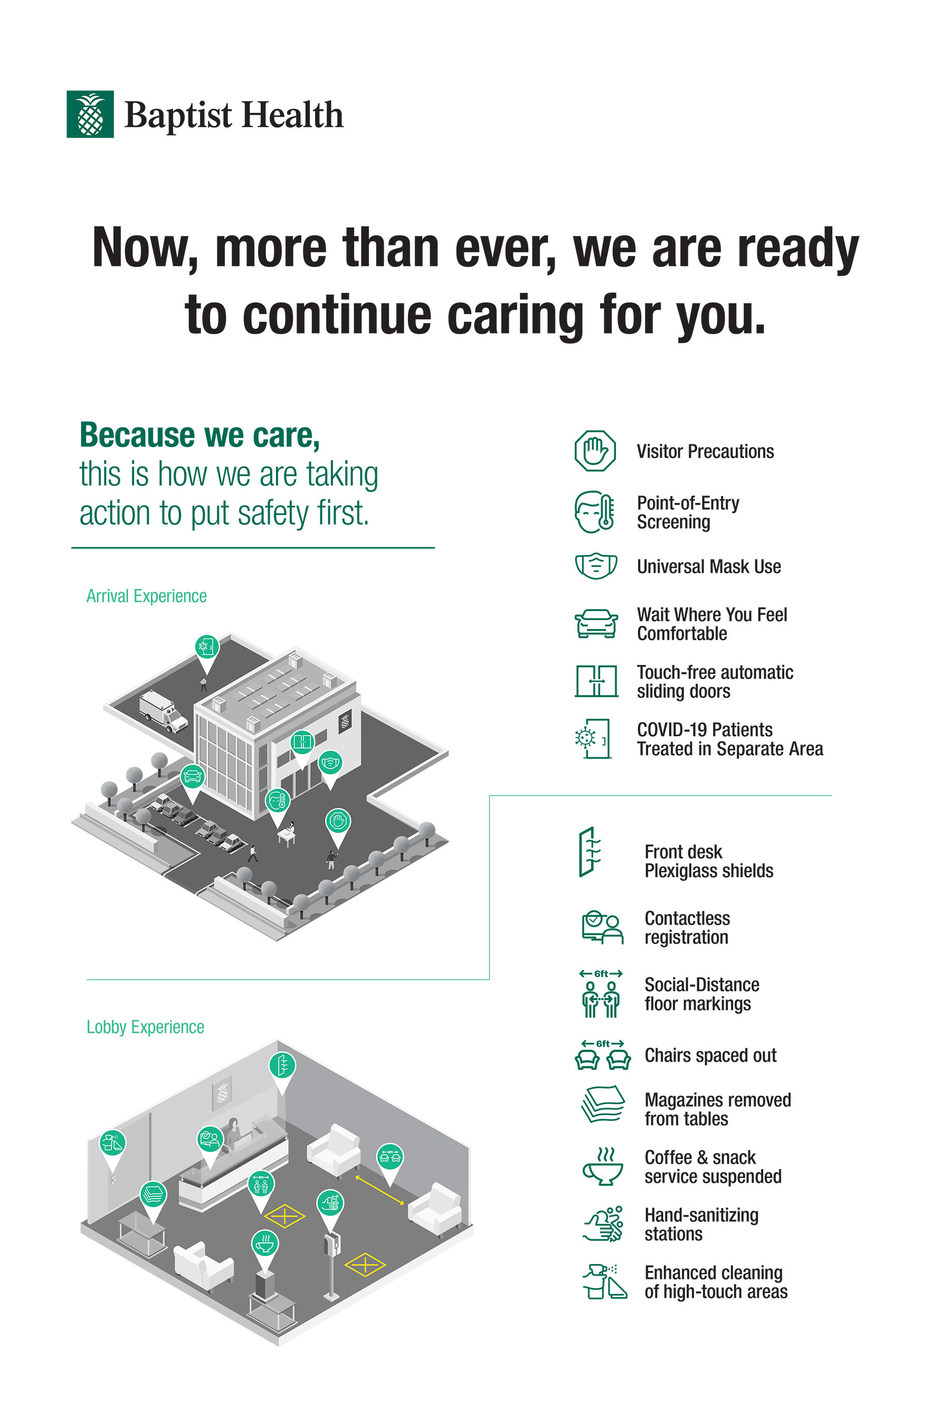 Baptist_Health_Because_We_Care_Safety_First_INFOGRAPHIC